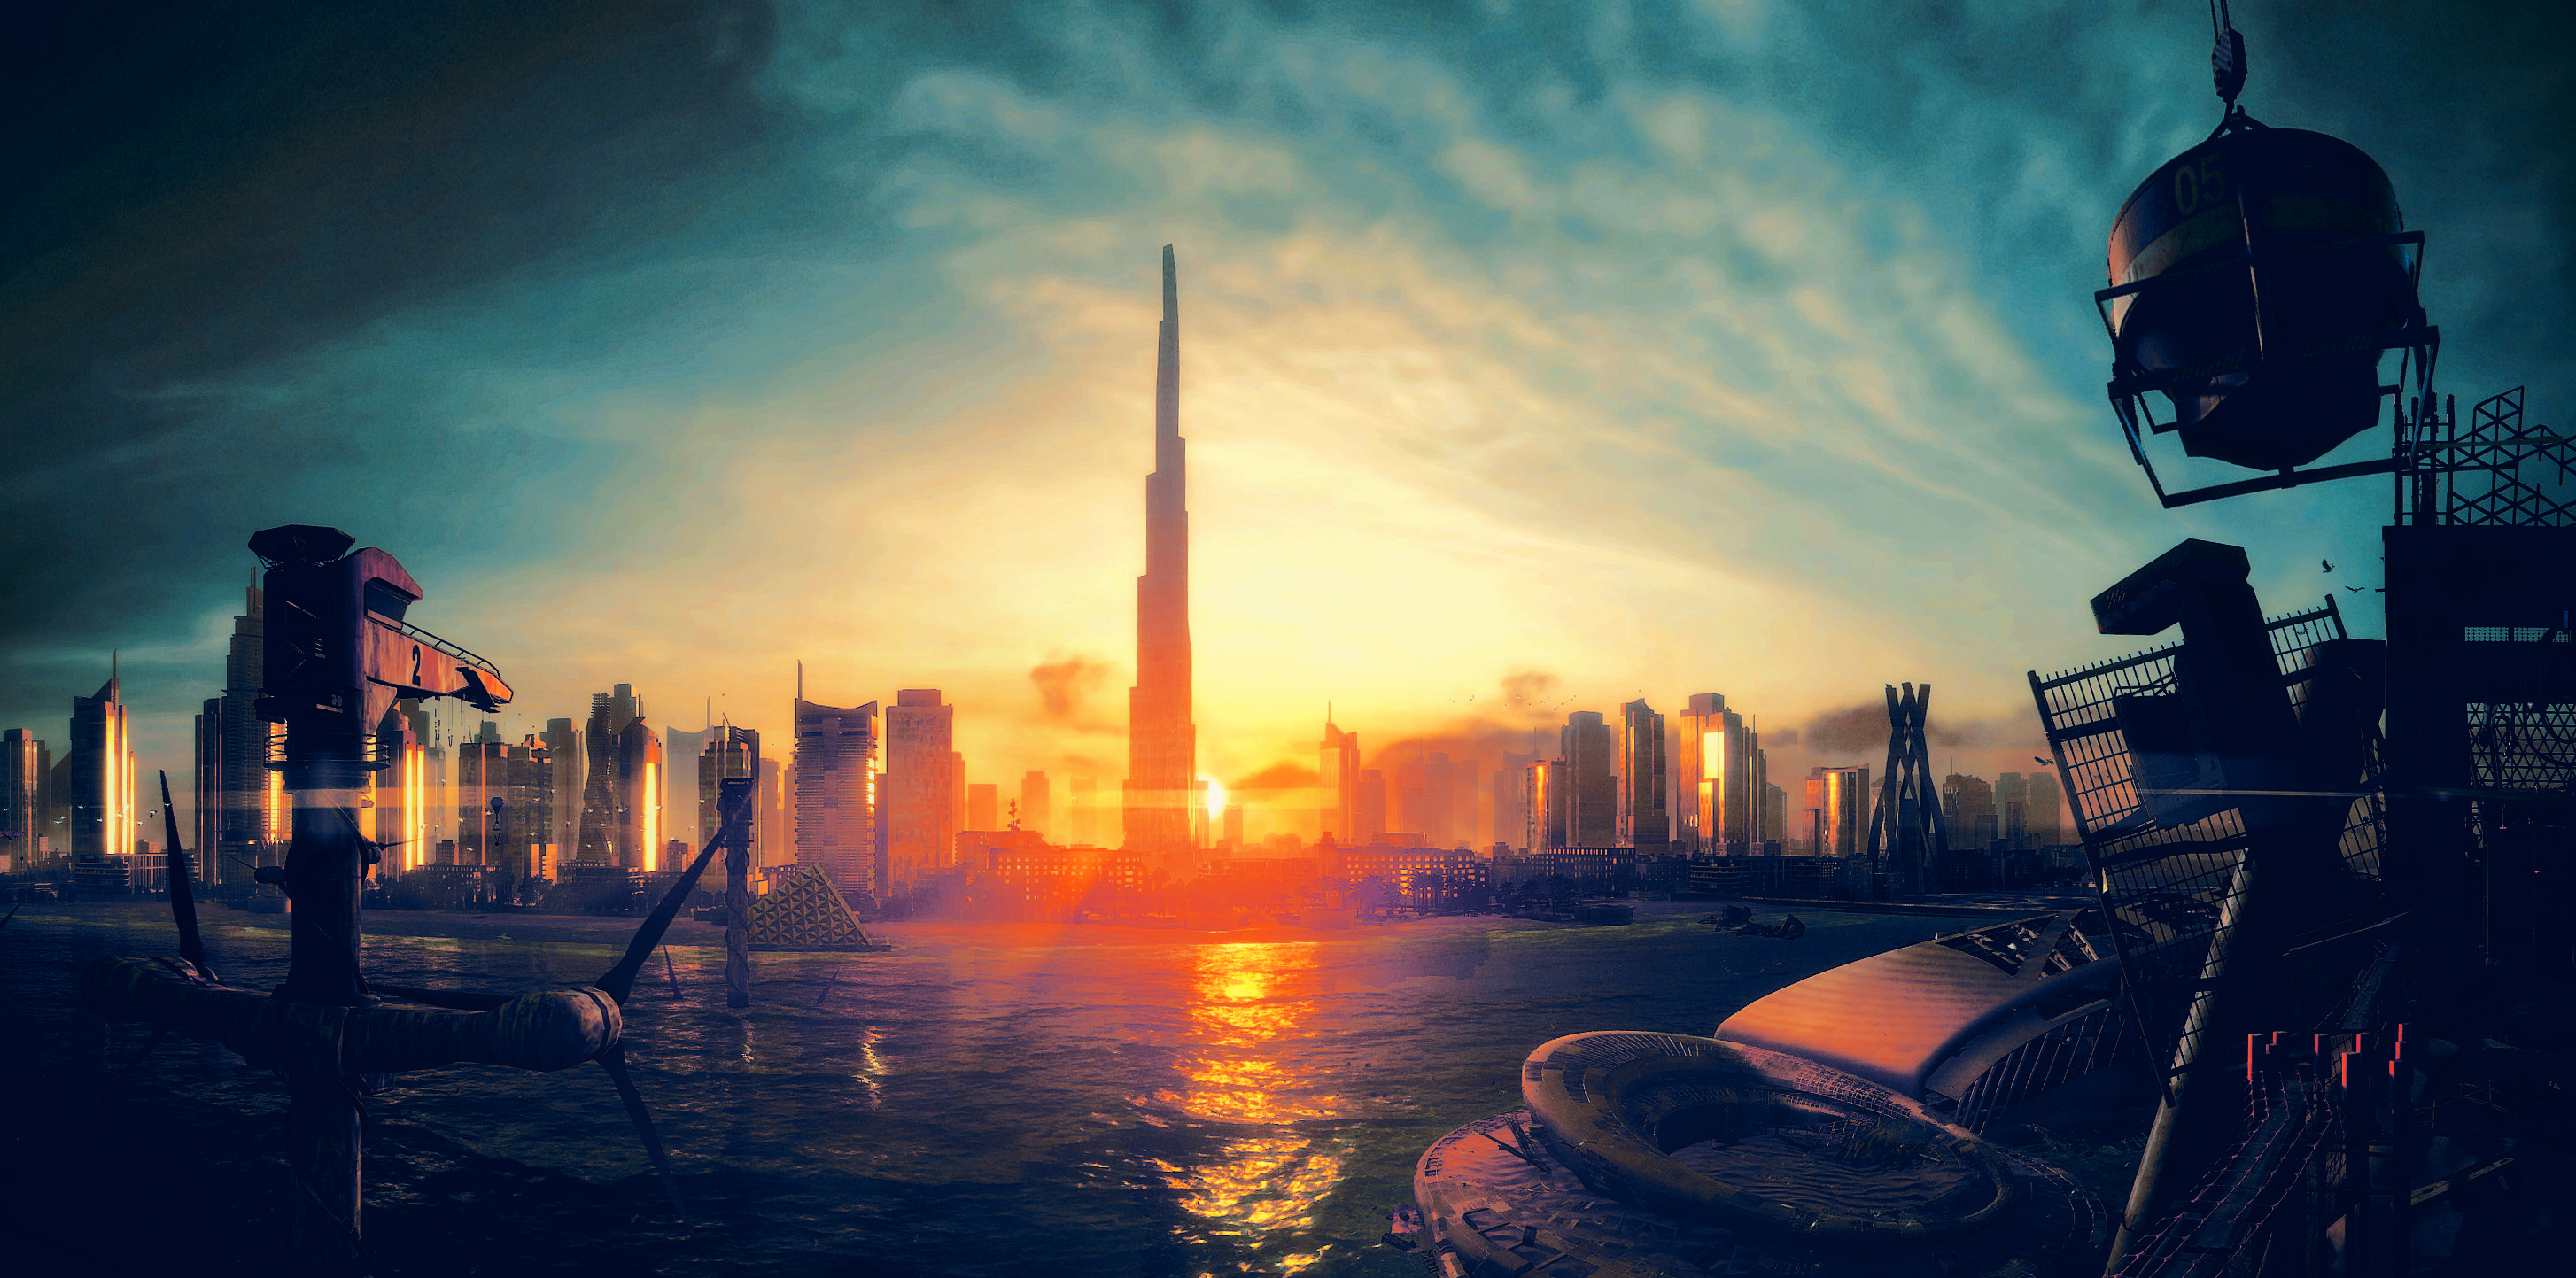 General 2908x1443 spec ops: the line video games video game art cityscape sunlight sky